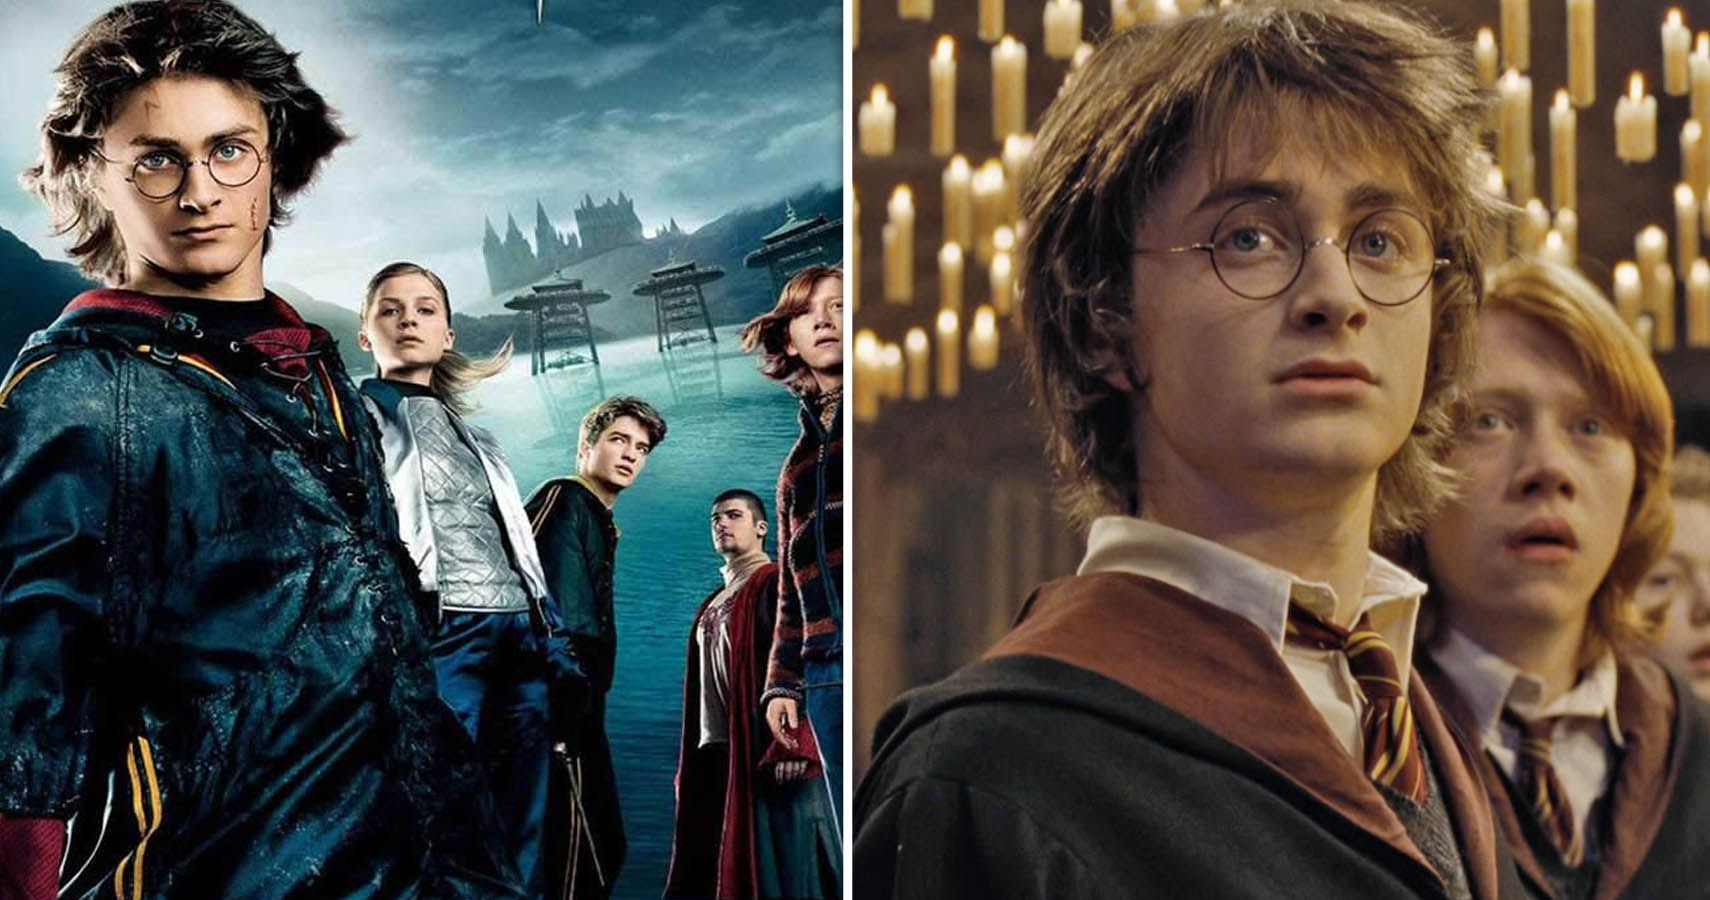 Harry Potter And The Goblet Of Fire: All Deleted Scenes, Ranked In Chronological Order